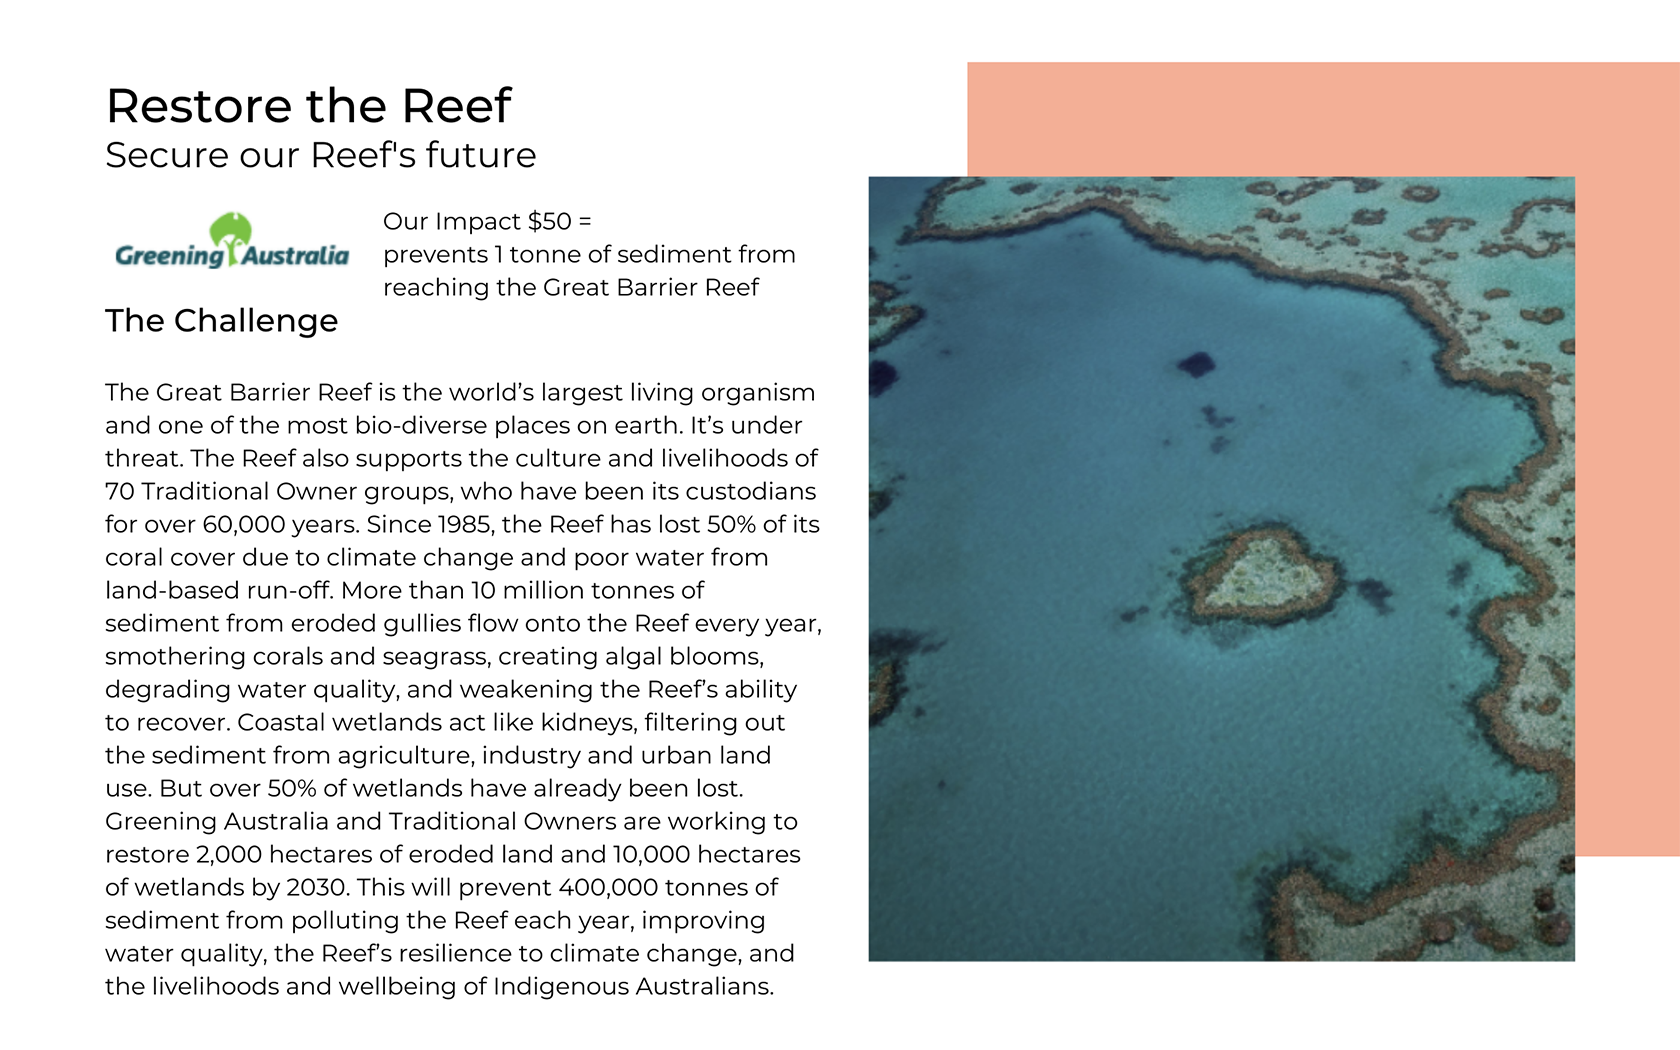 Aôra Voyage support Greening Australia to regenerate the Great Barrier Reef